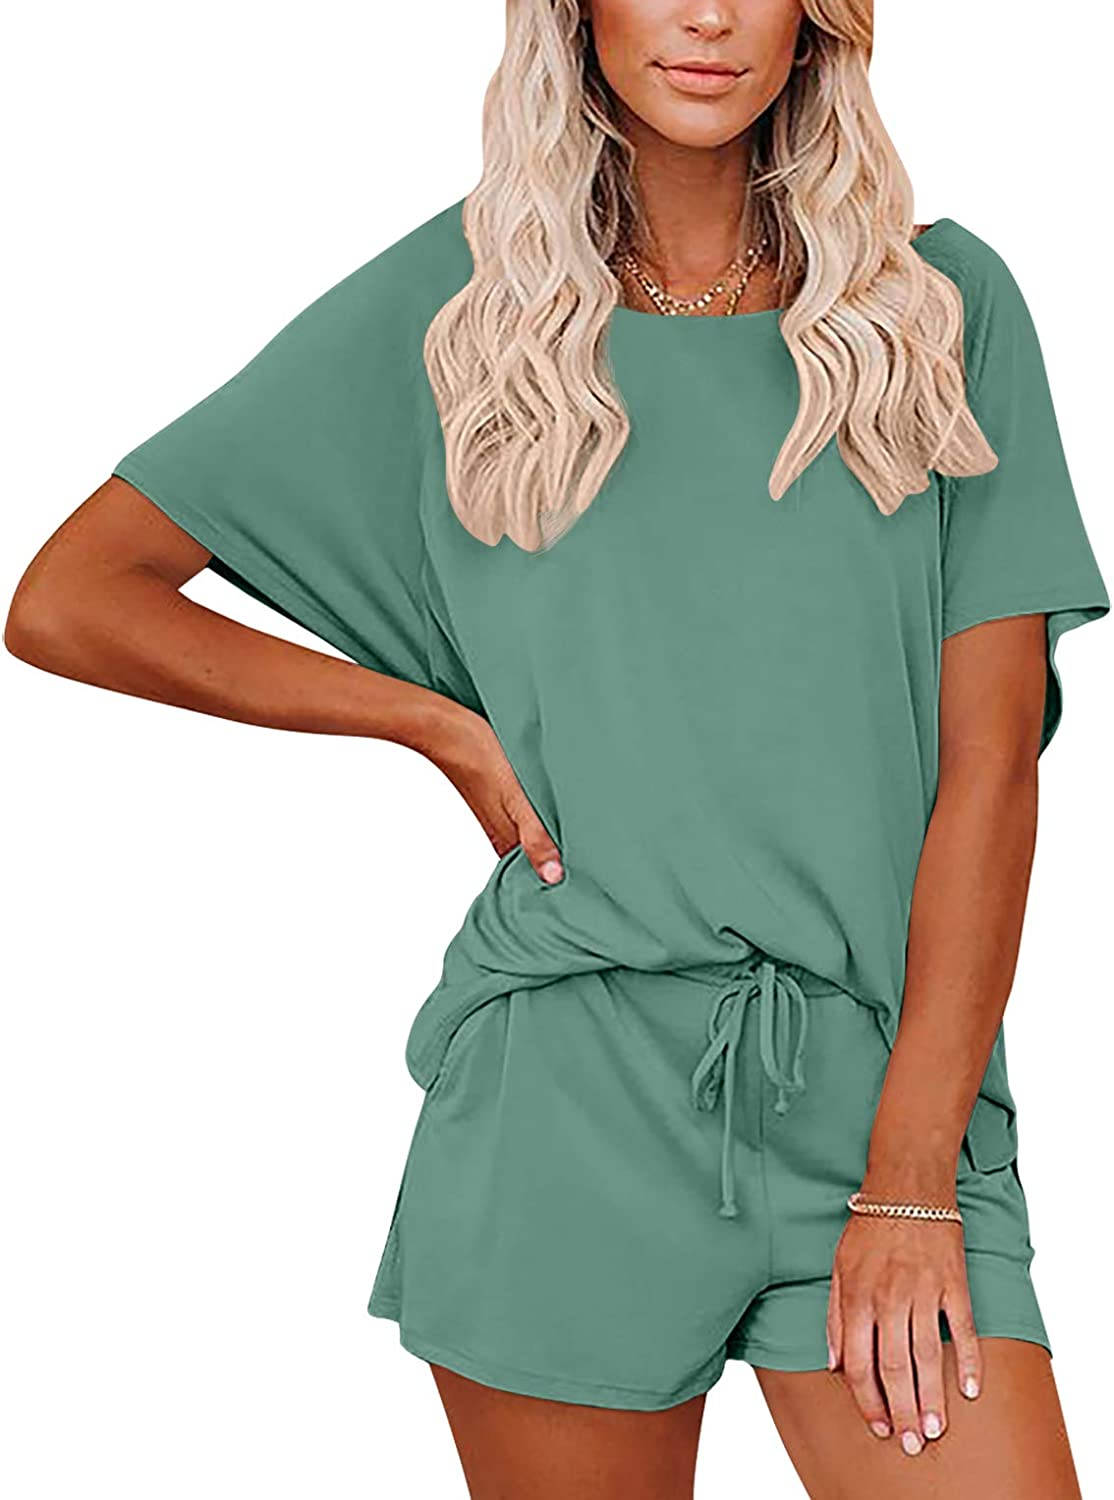 We OFFer at cheap prices Spadehill Women Short Sleeve Top Sleepwear Piece Cotton 2 Free shipping anywhere in the nation Sets